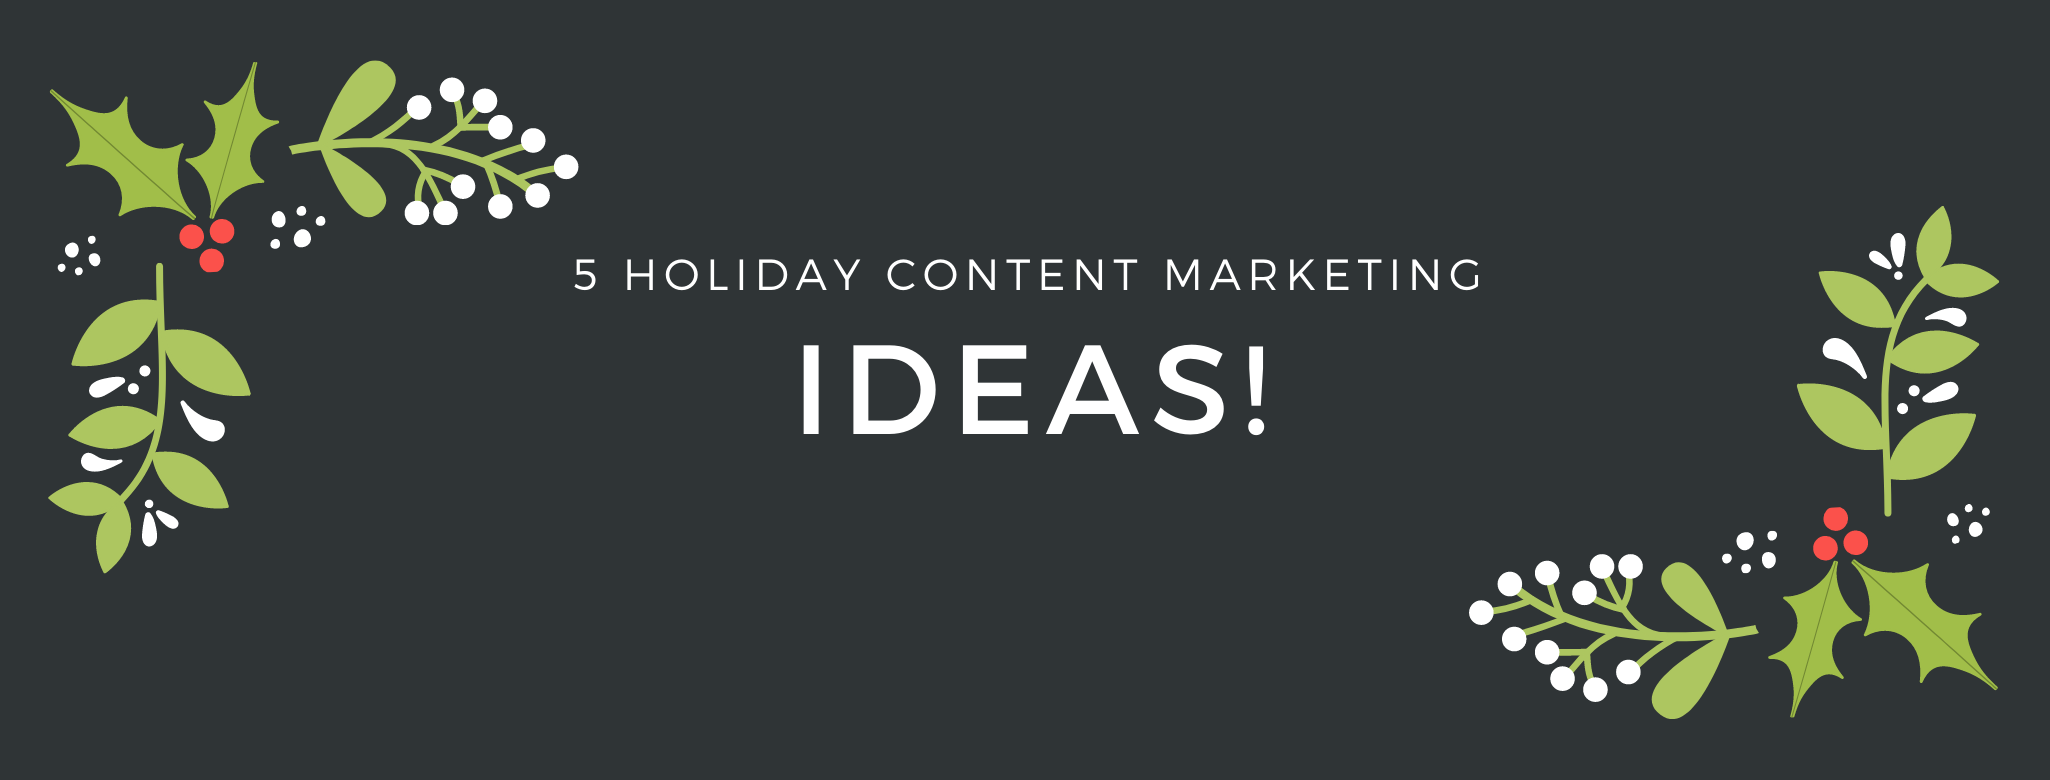 5 Quick Content Marketing Ideas for the Holidays